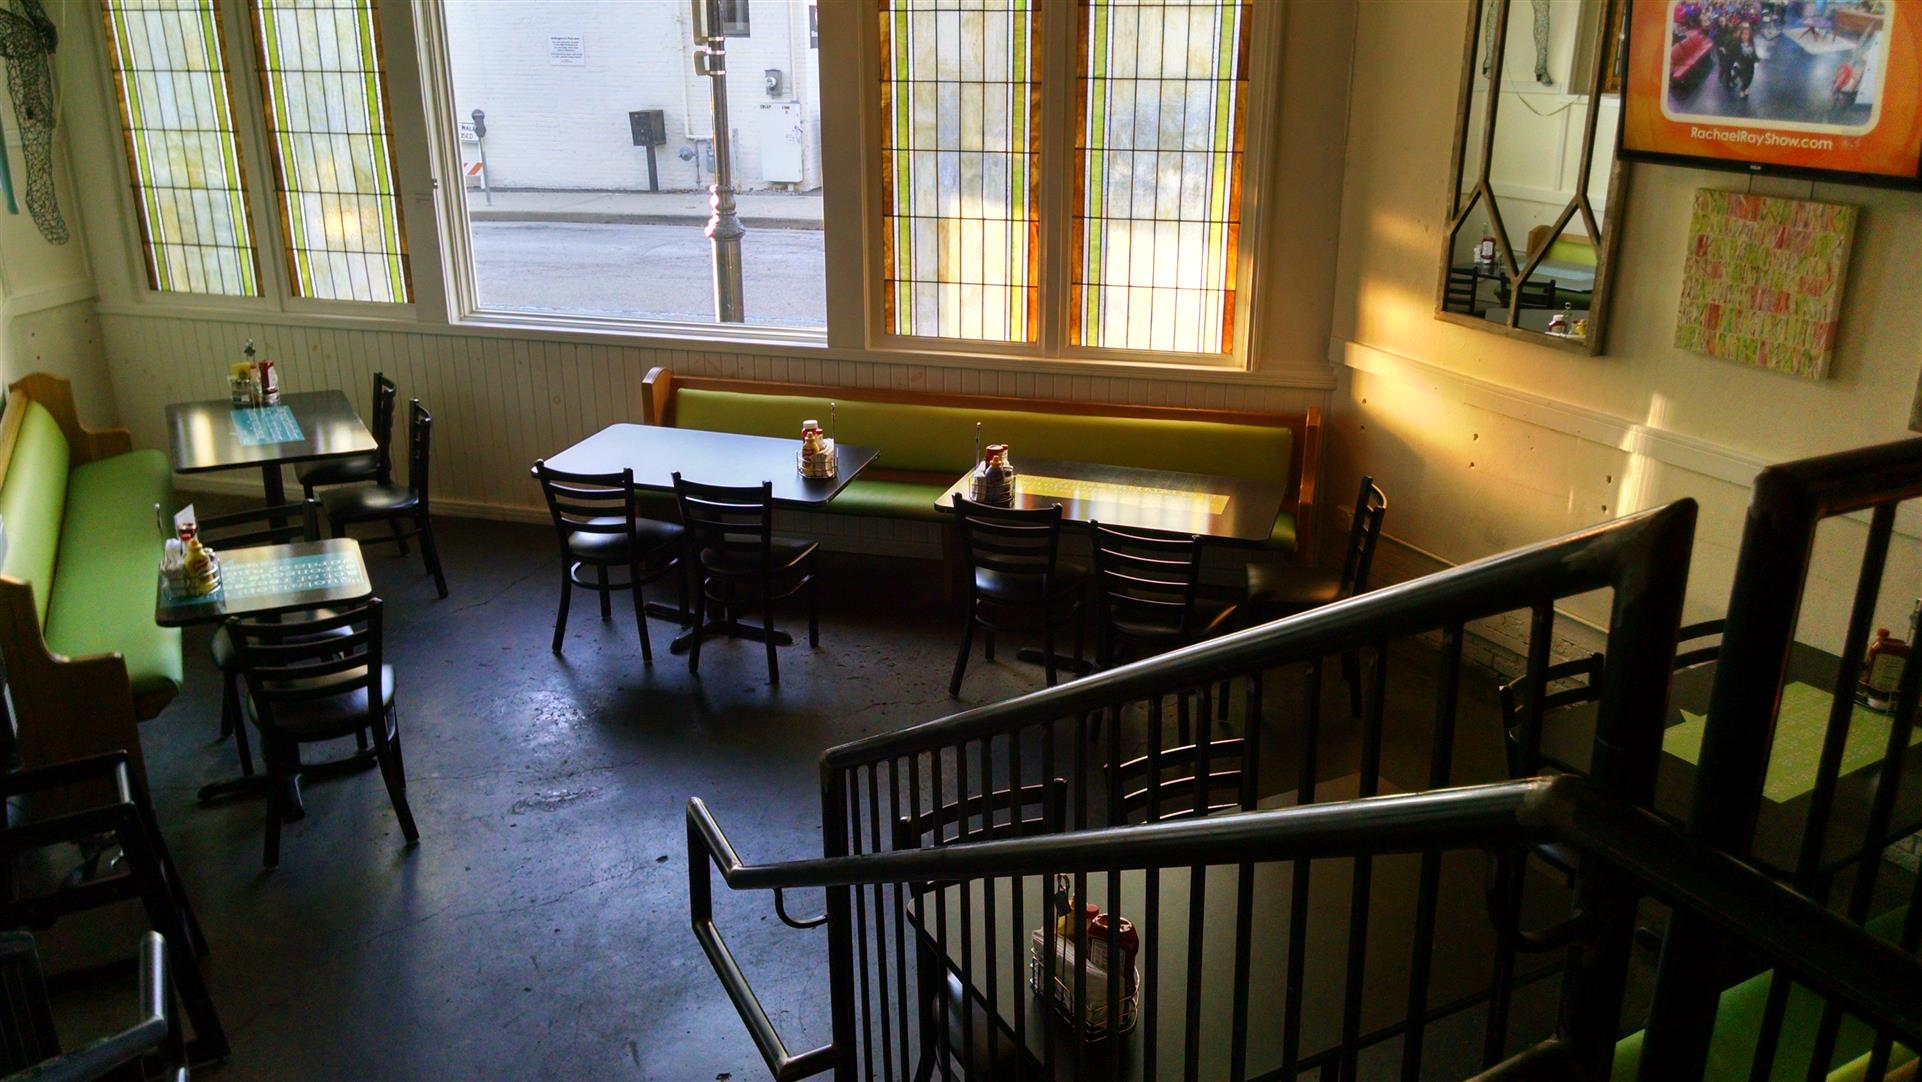 inside Arlington's Restaurant looking down steps at seating area with tables and chairs